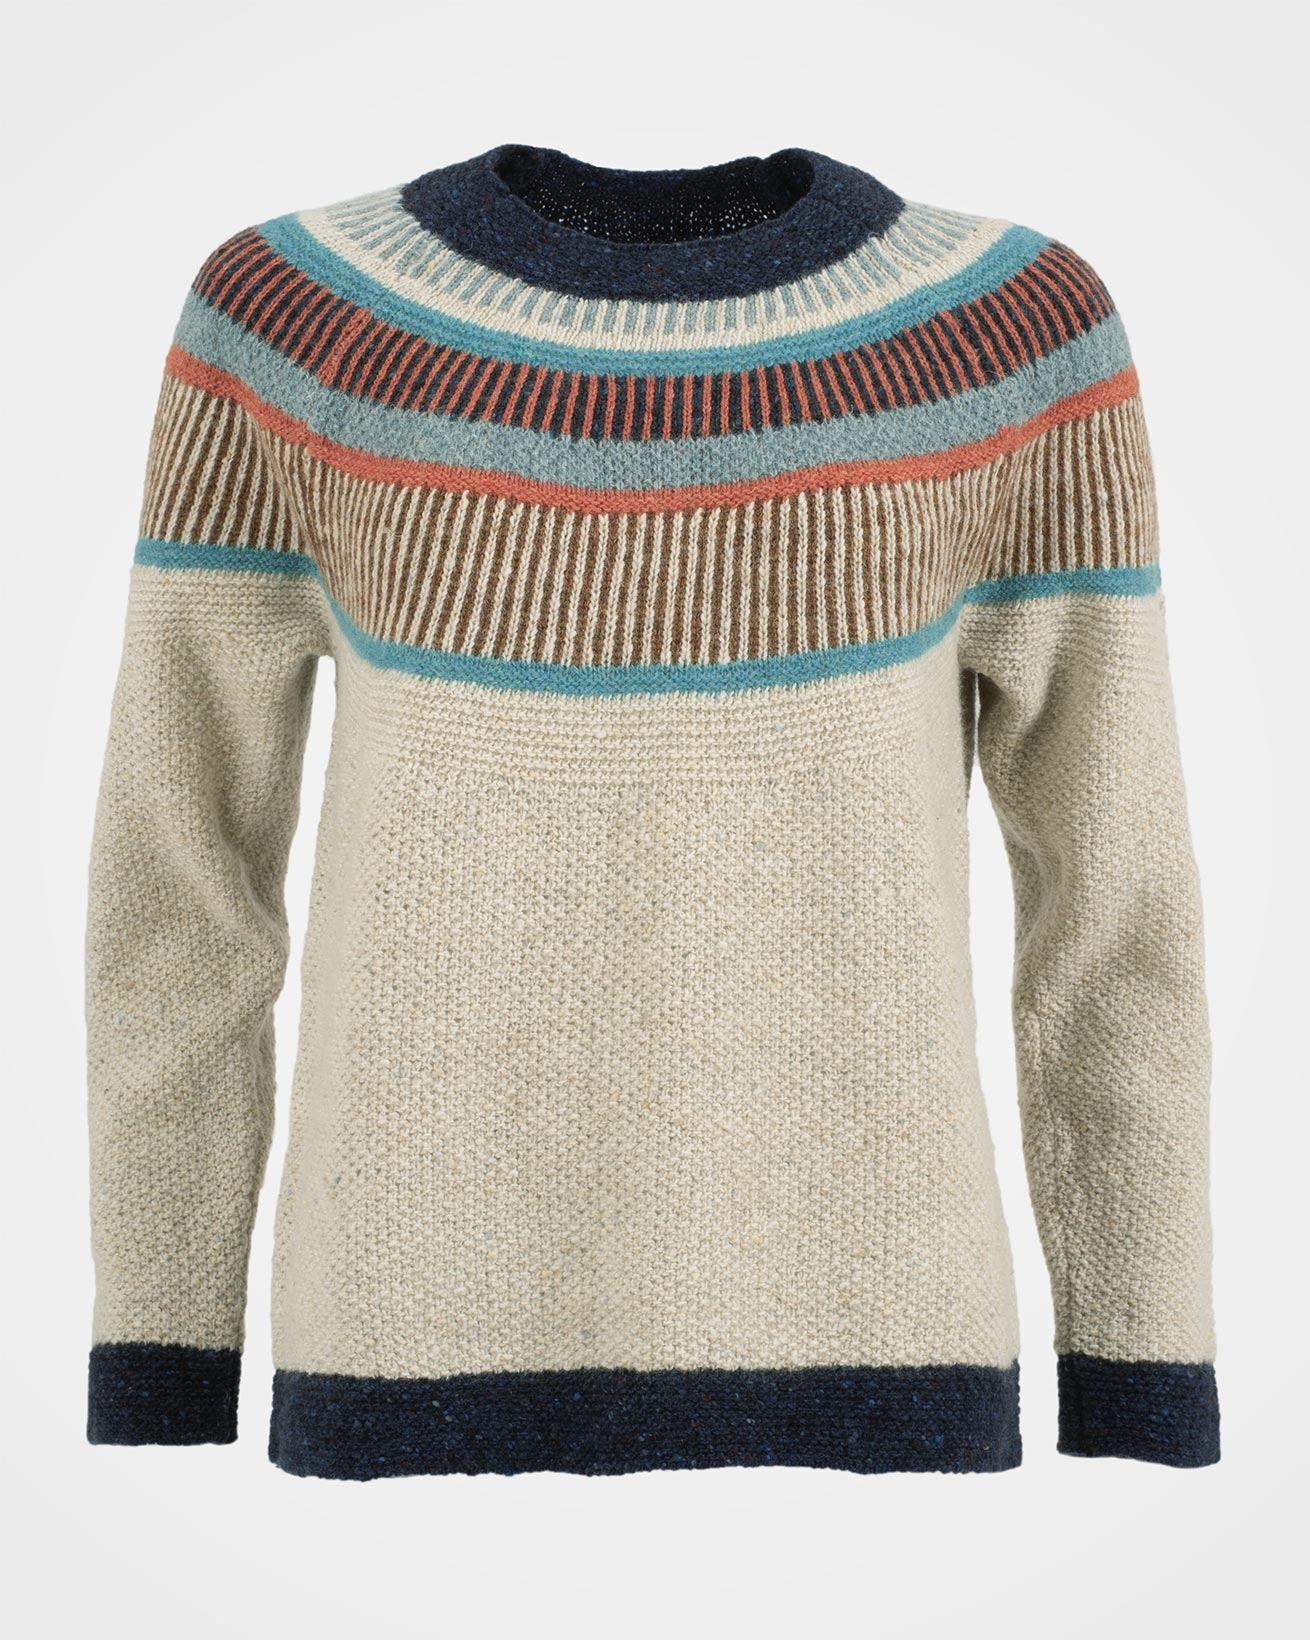 7675_statement-donegal-jumper_oatmeal_front.jpg